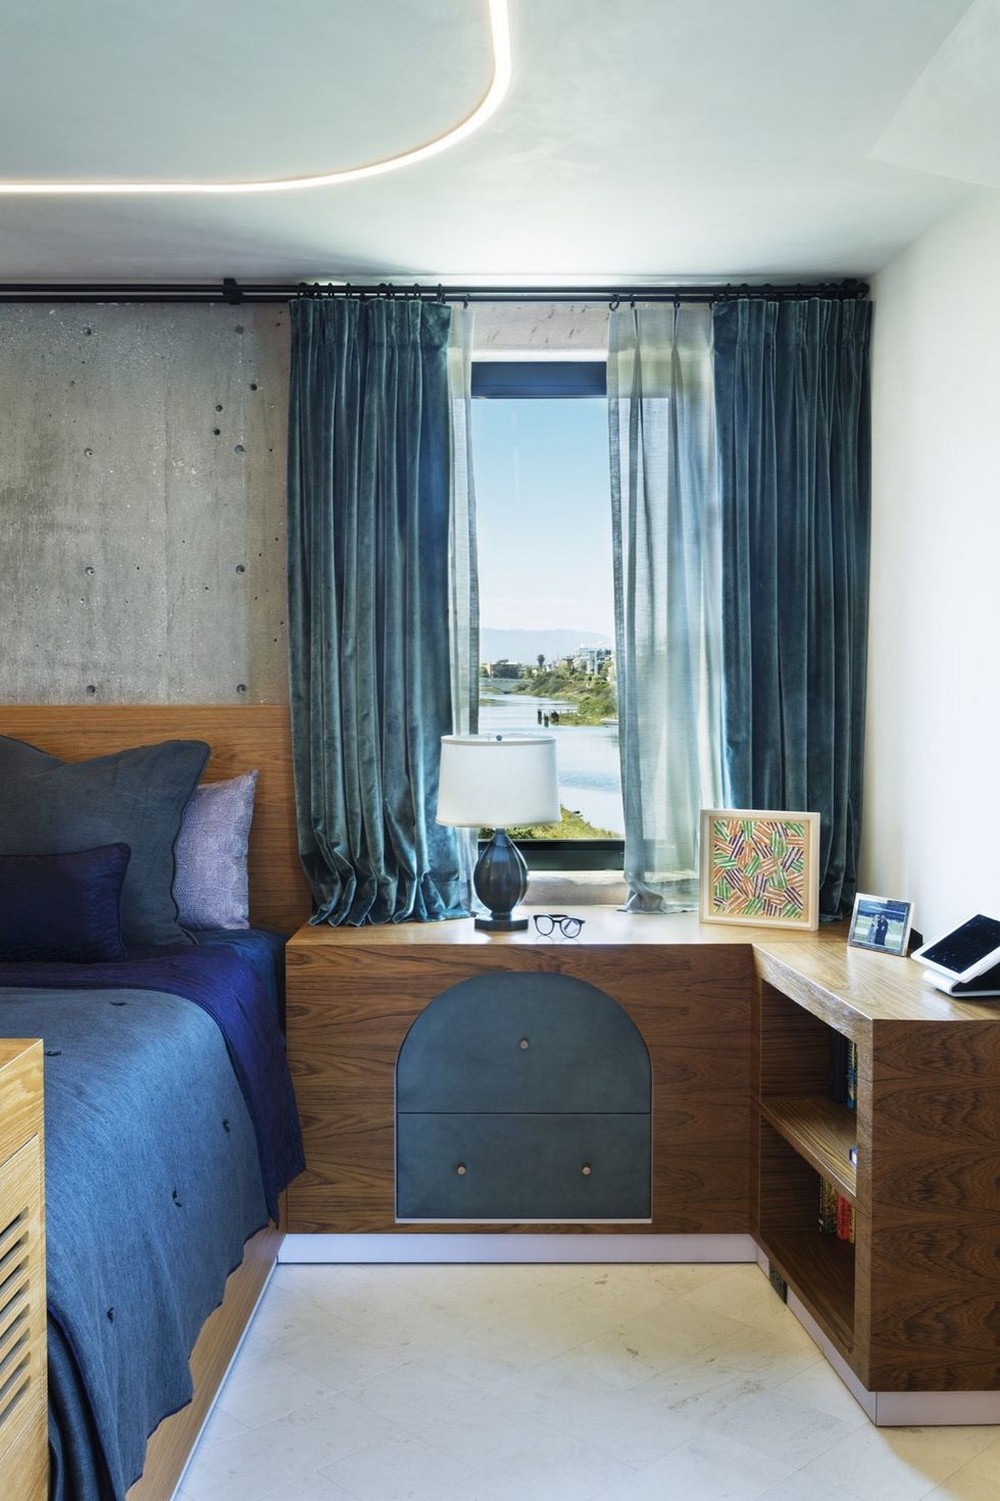 Modern Bedrooms 6 Interior Spaces to Draw Exquisite Design Ideas From 5 modern bedrooms Modern Bedrooms: 6 Interior Spaces to Draw Exquisite Design Ideas From Modern Bedrooms 6 Interior Spaces to Draw Exquisite Design Ideas From 5